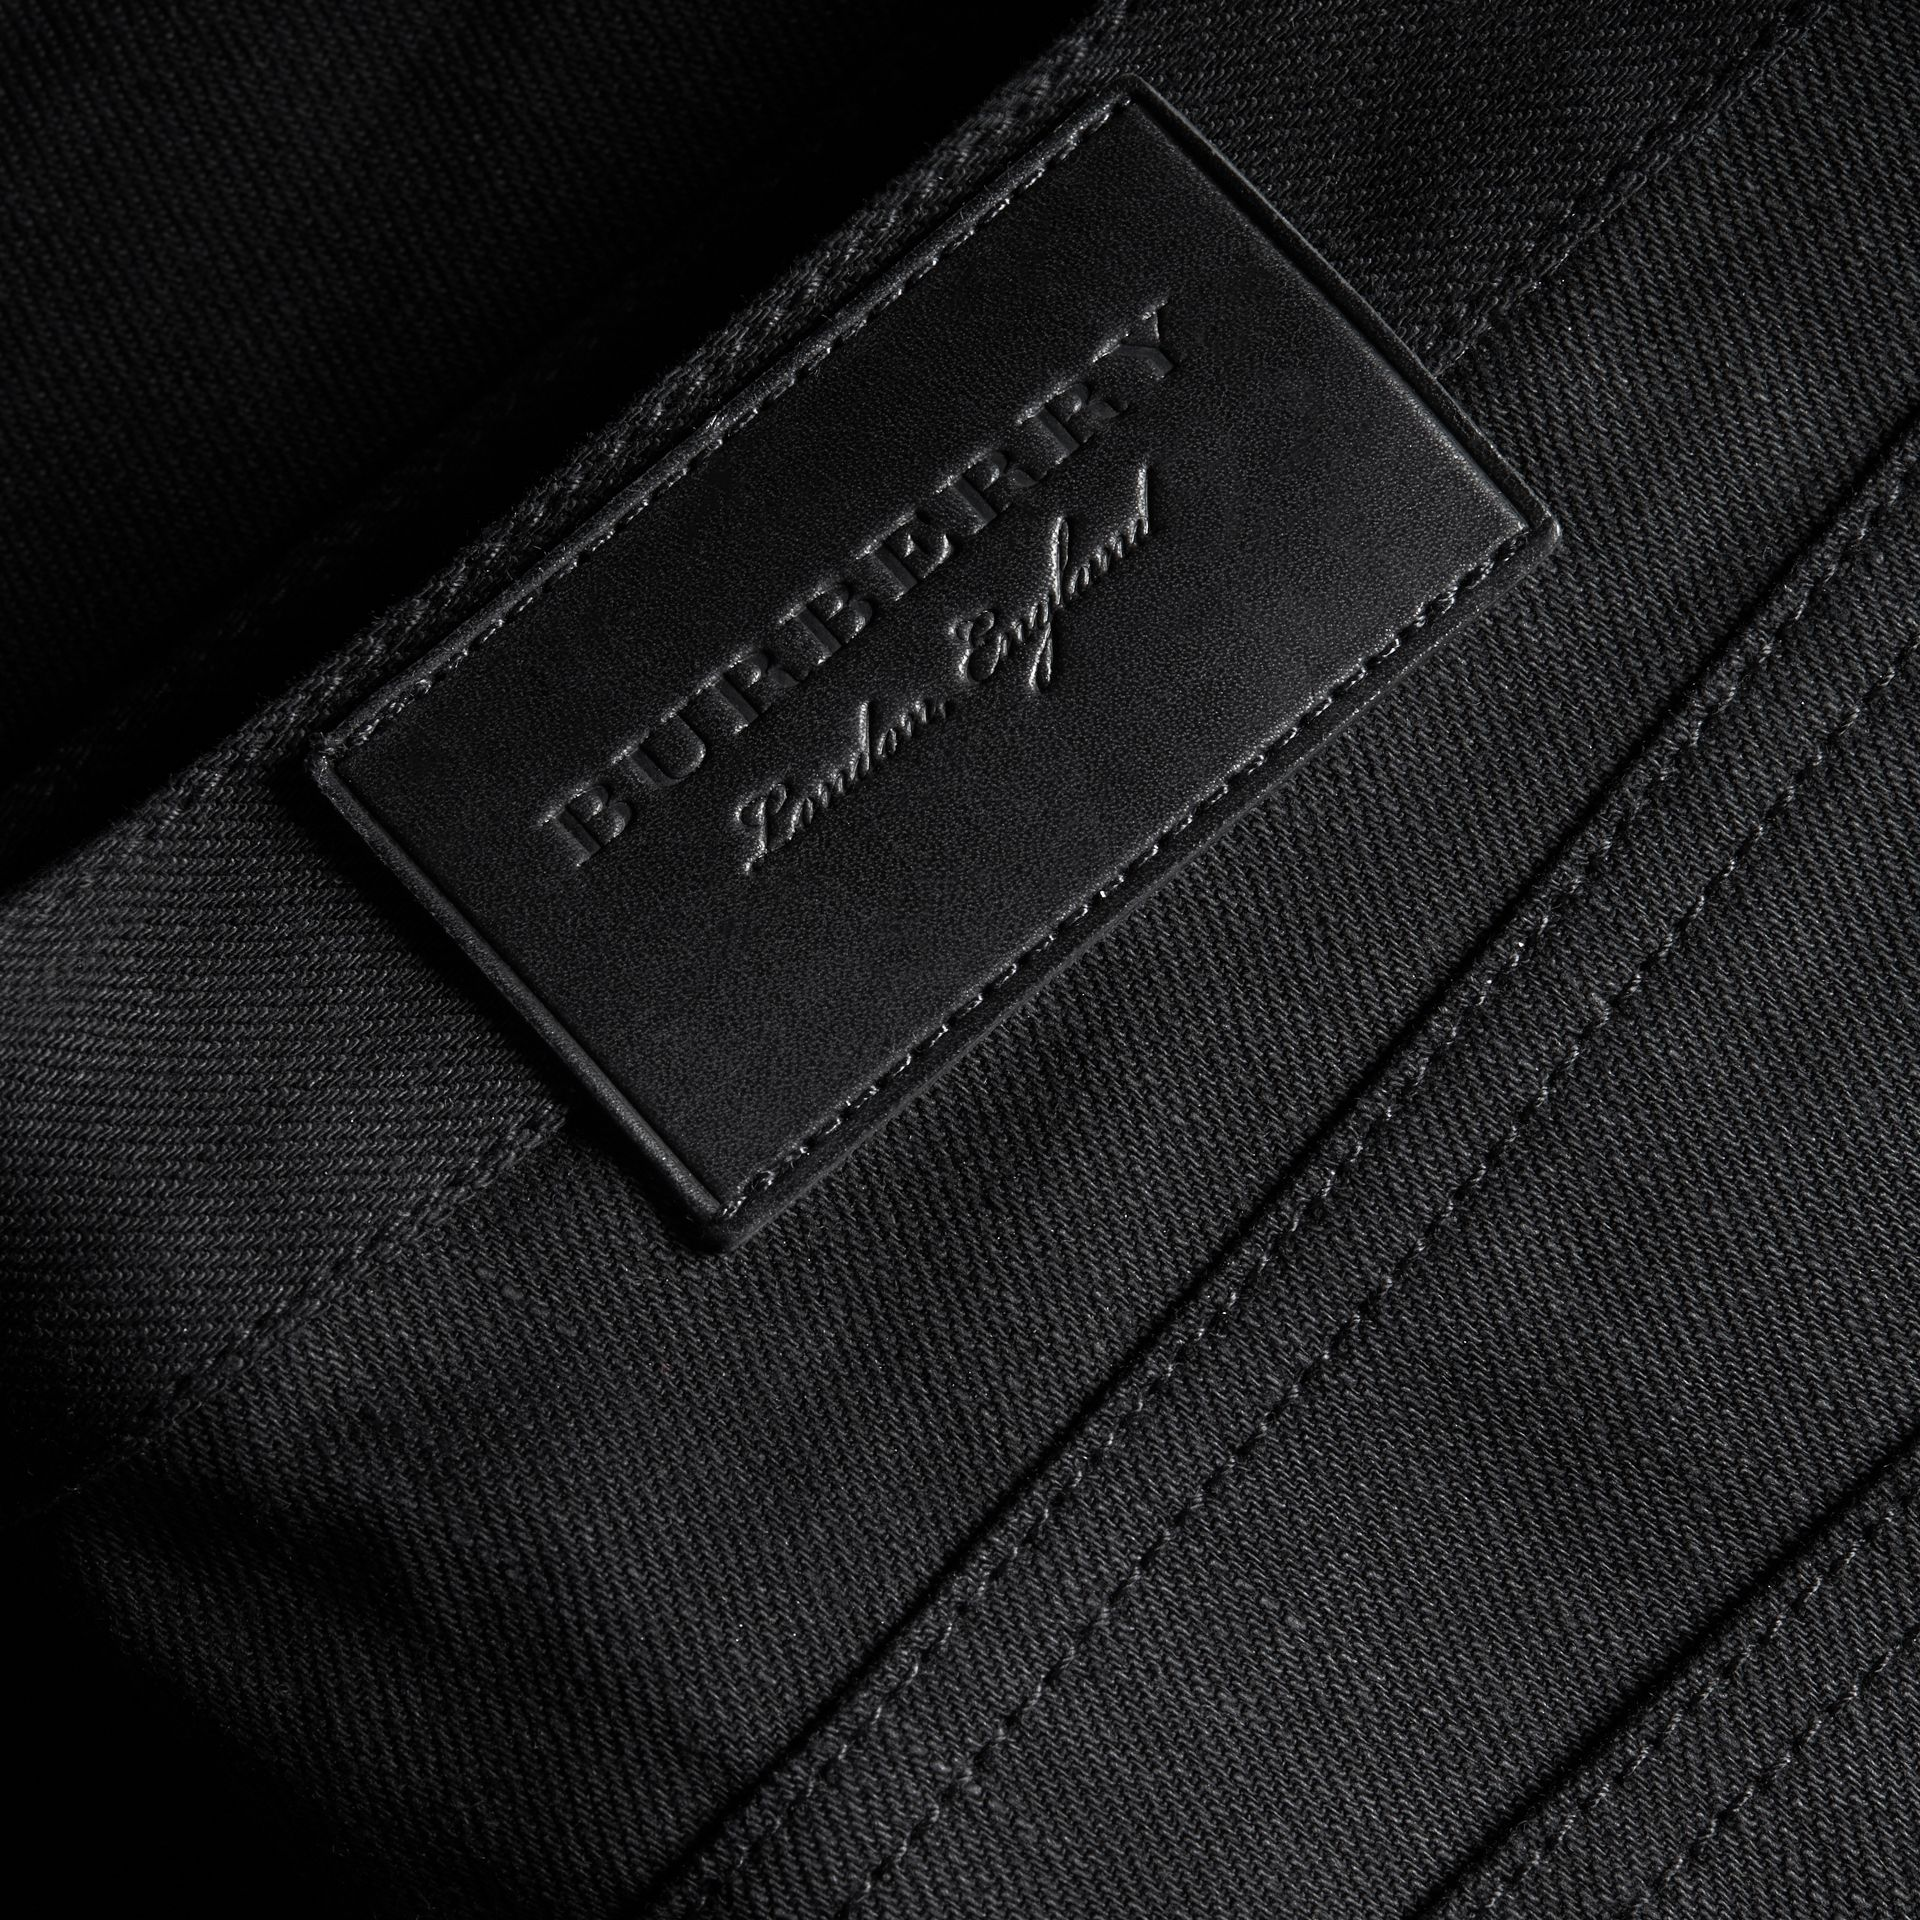 Slim Fit Japanese Denim Jeans in Black - Men | Burberry United Kingdom - gallery image 1